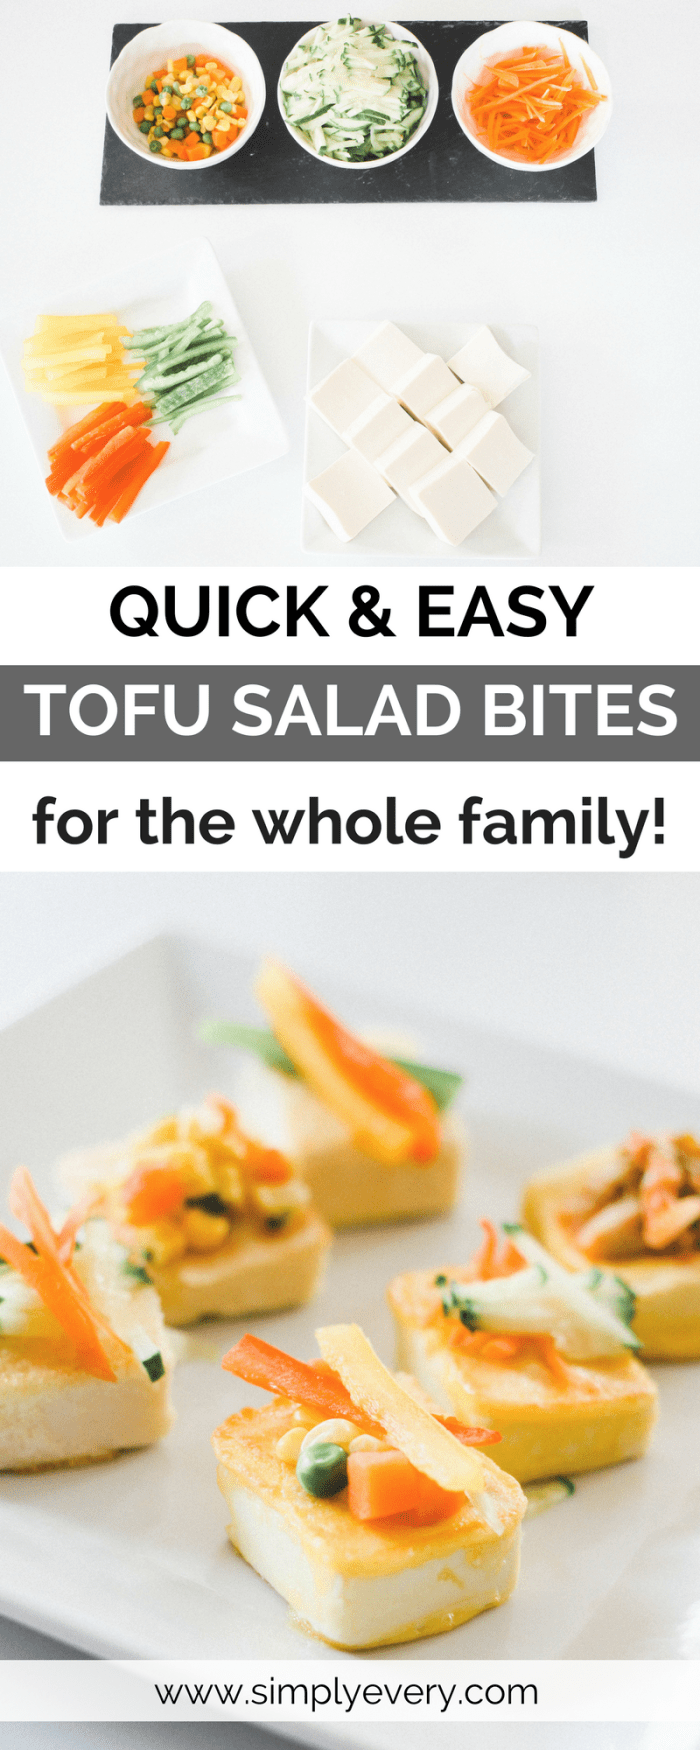 Quick and Easy Tofu Salad Bites